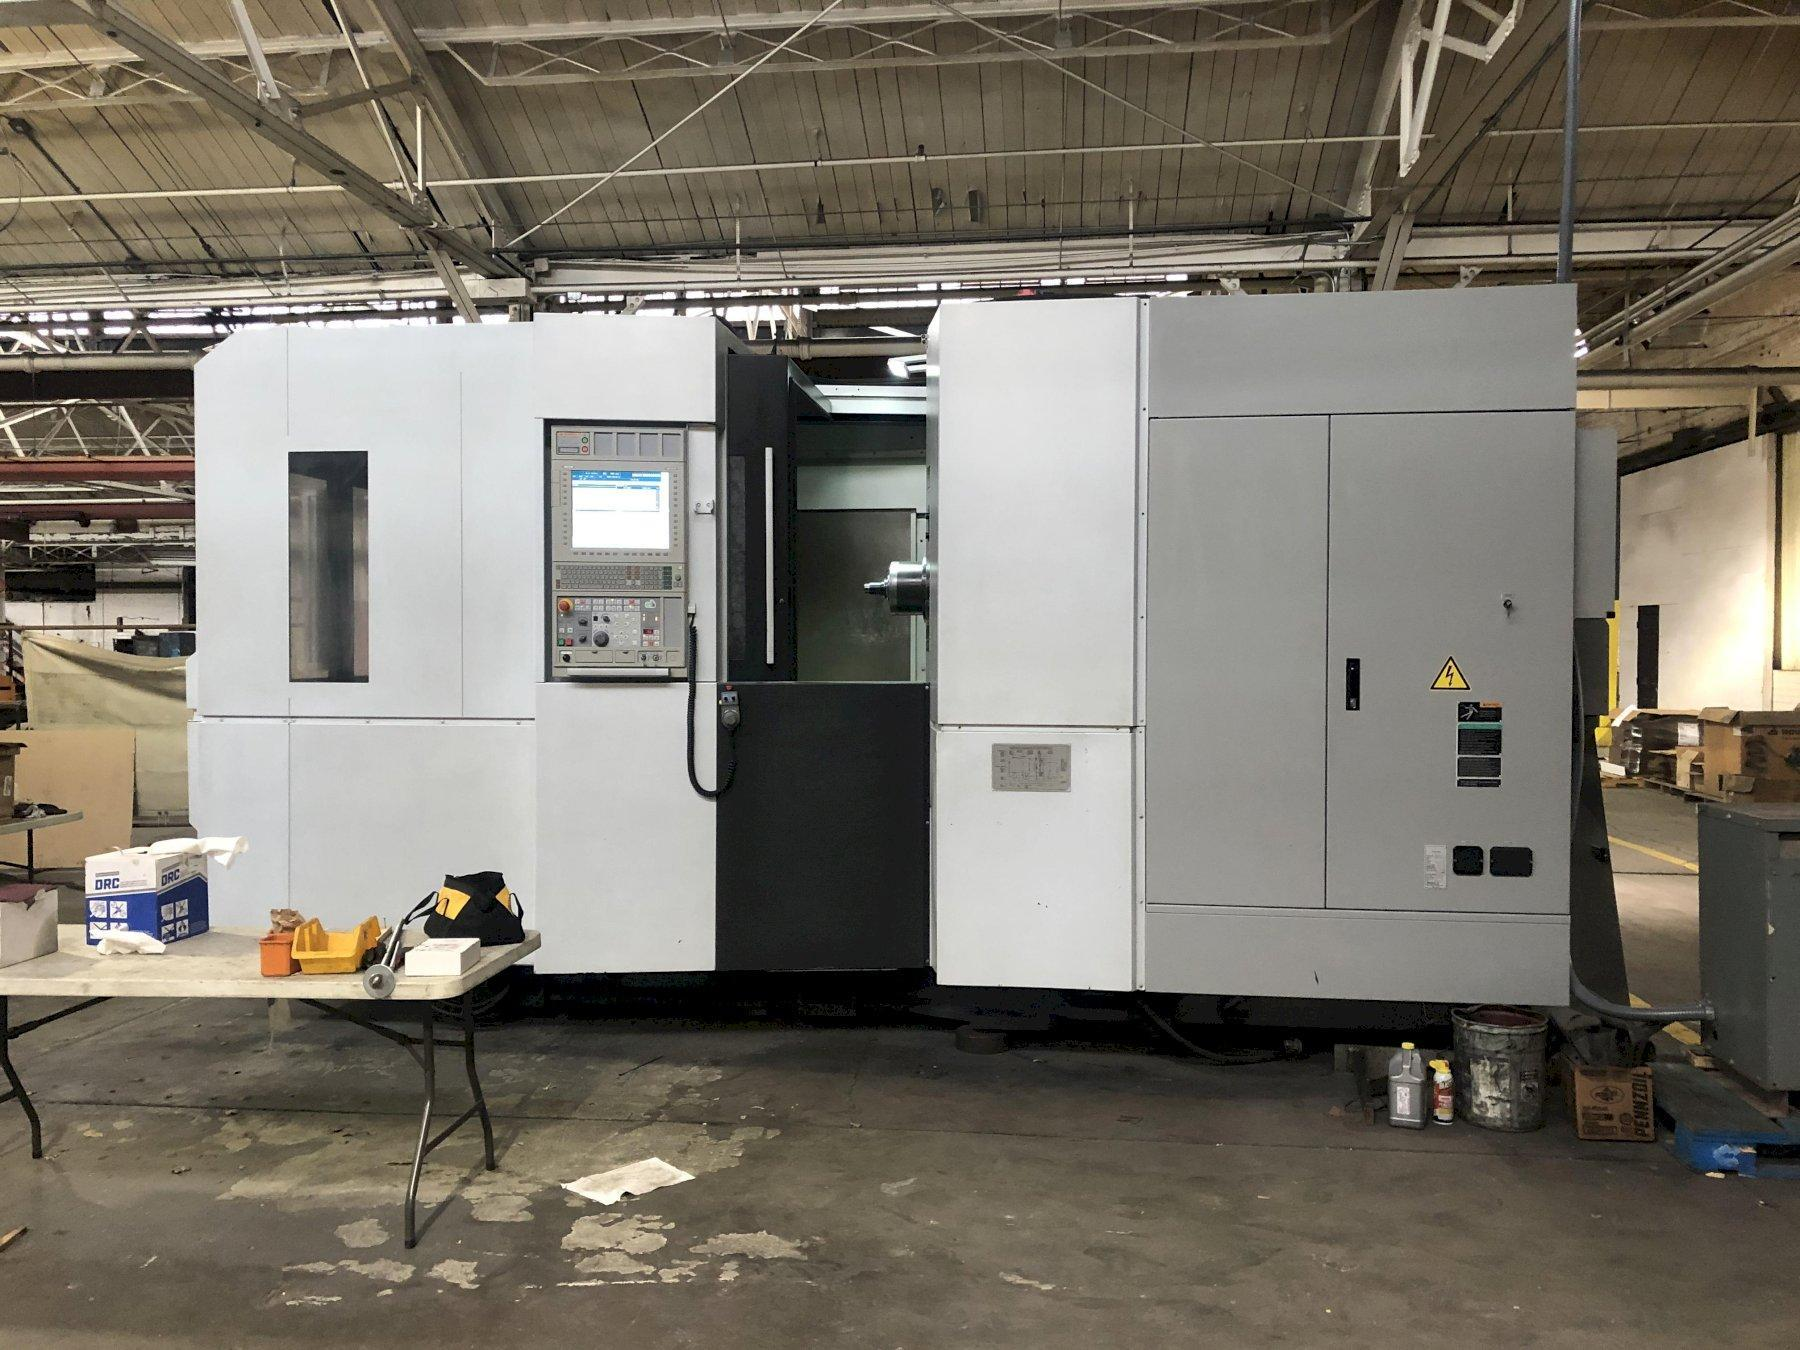 Mori Seiki NH6300DCGII CNC Horizontal Machining Center, MSX701IV (Fanuc 31i), 24.8